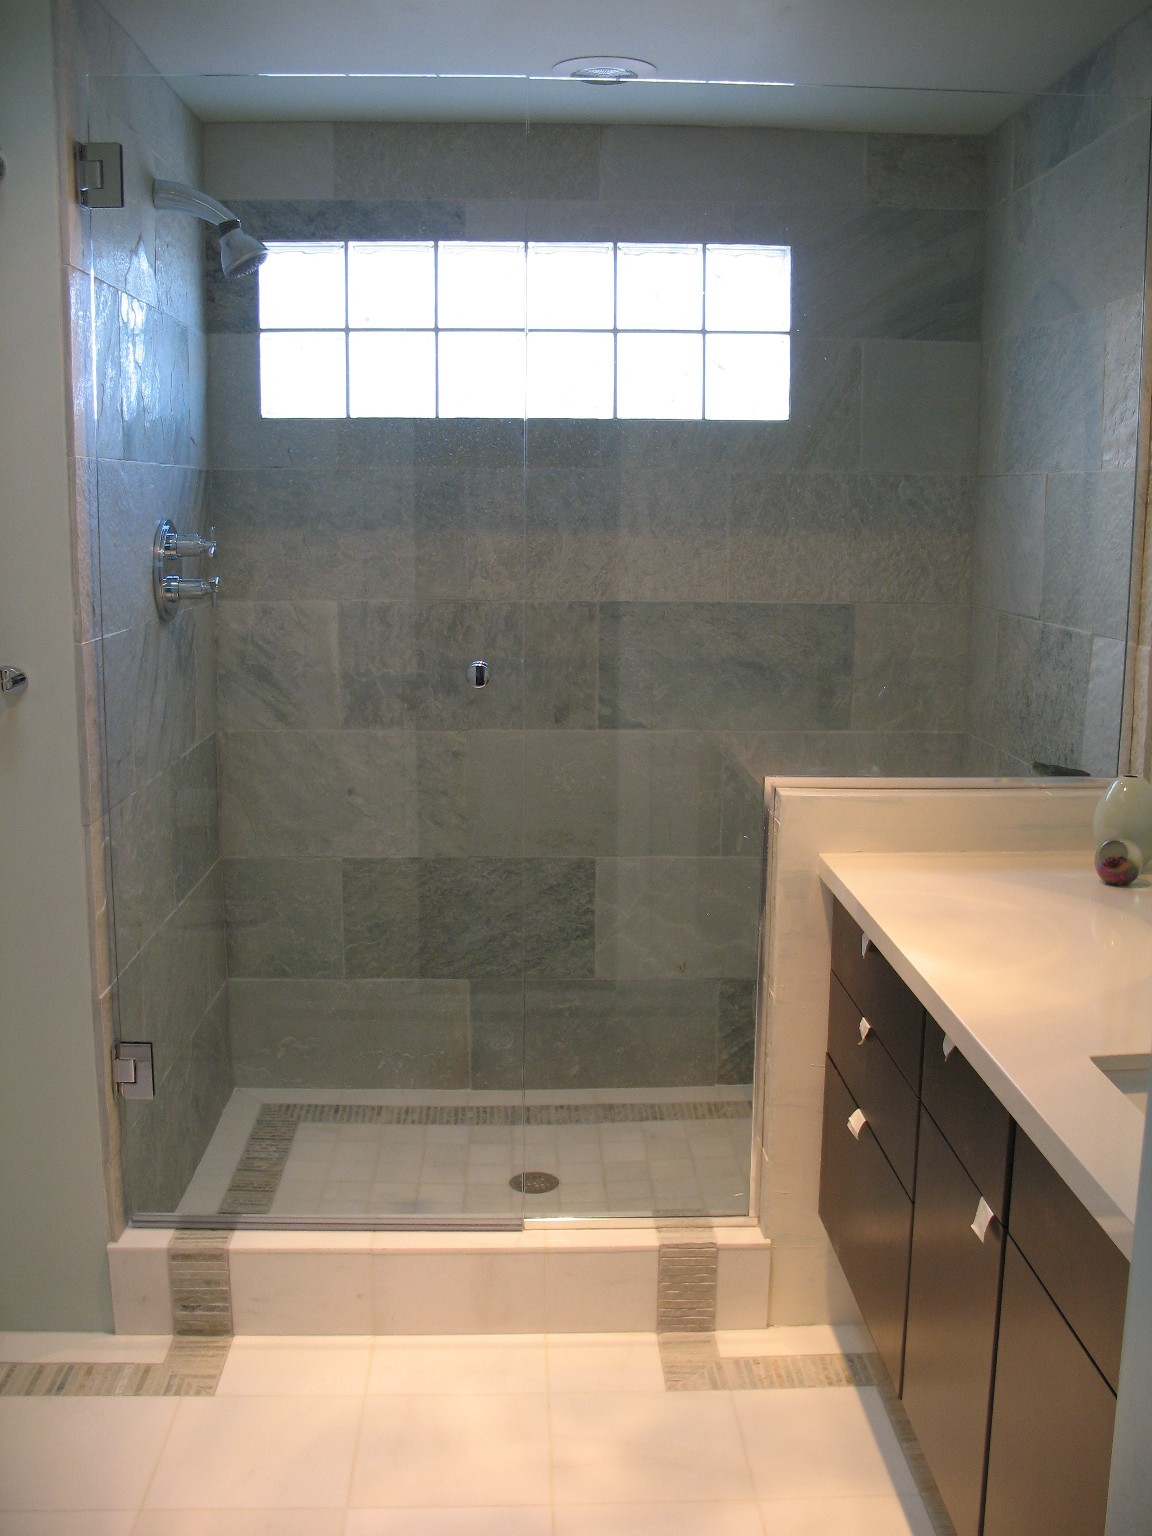 30 shower tile ideas on a budget Shower over bath ideas